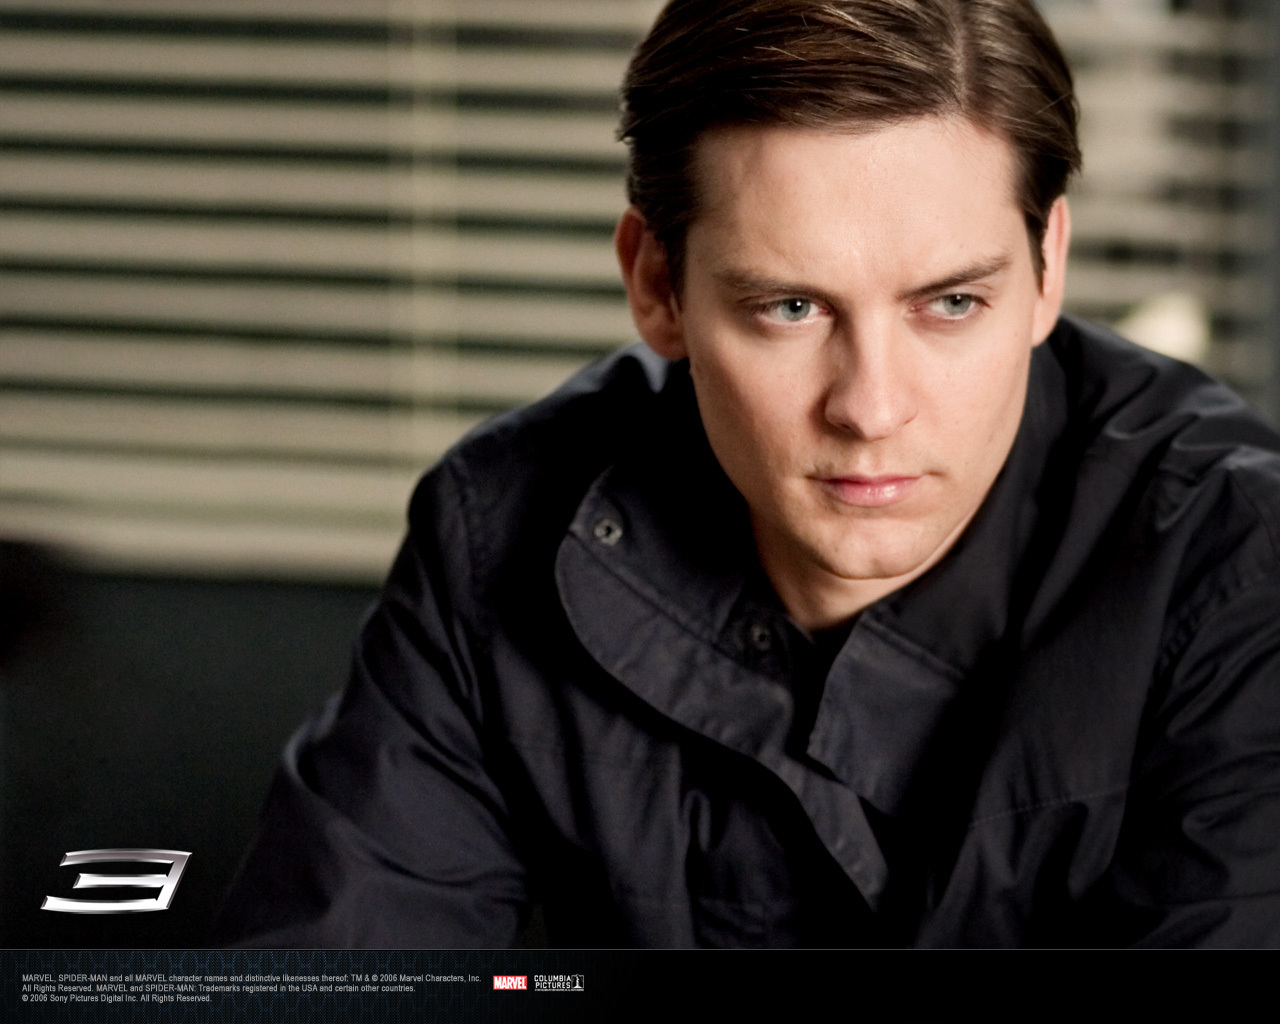 peter parker images peter parker hd wallpaper and background photos